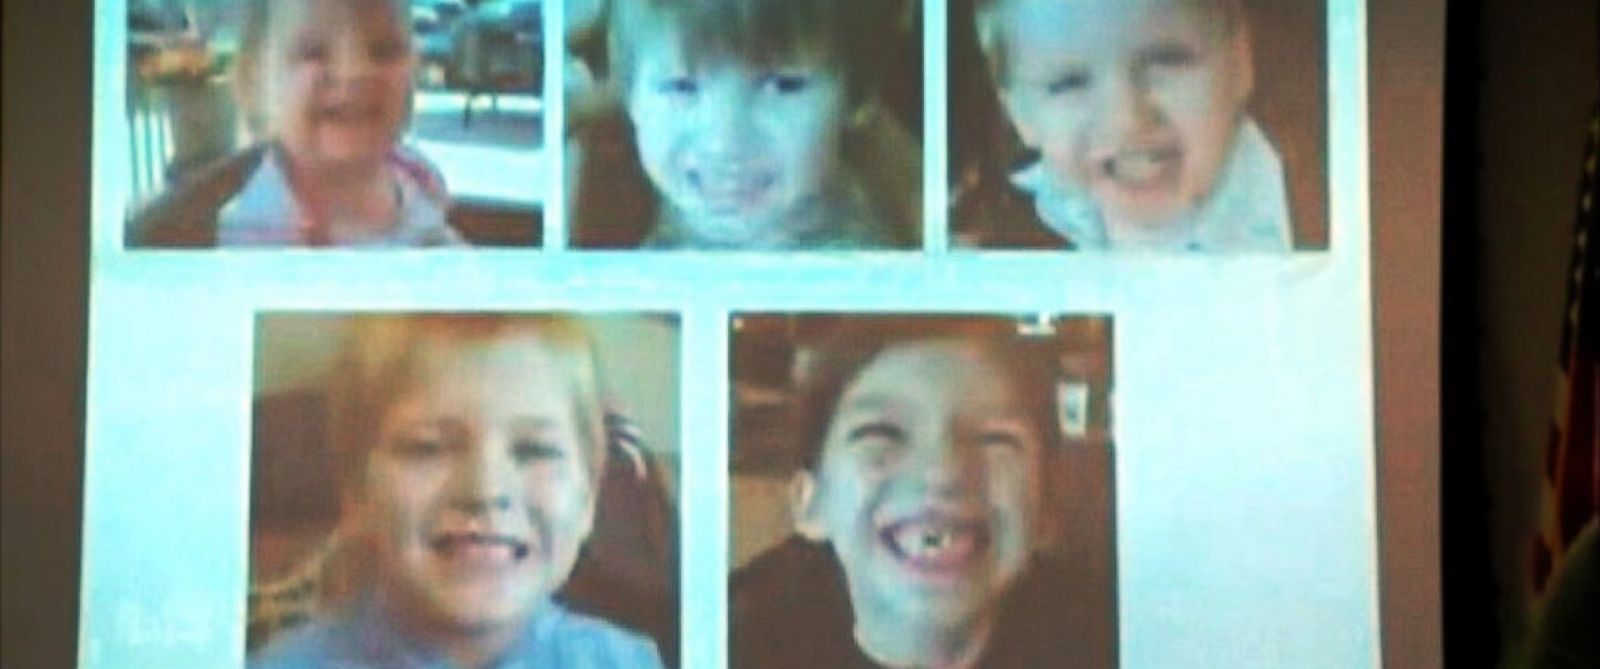 PHOTO: Timothy Jones Jr. will be charged with the murder of his five children, who ranged in age from 1 to 8, a South Carolina sheriff said today.